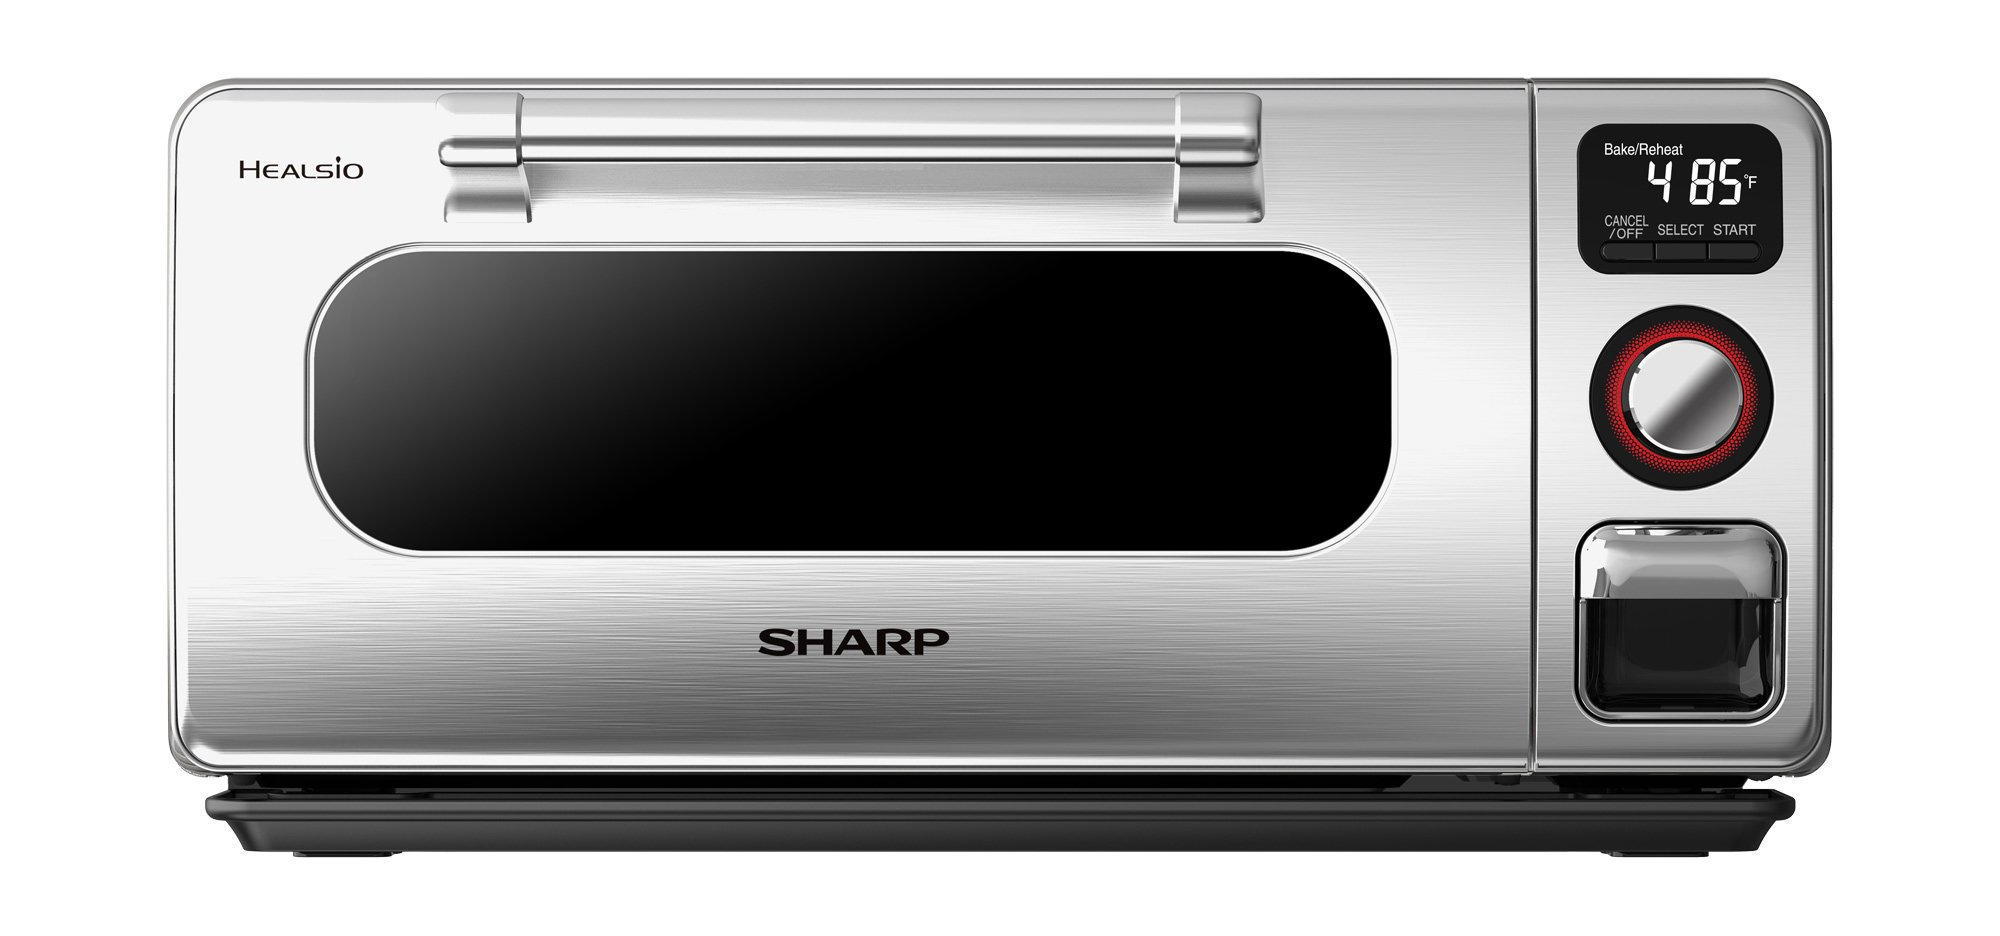 Sharp ZSSC0586DS, Superheated Steam Countertop Oven, Stainless Steel by Sharp